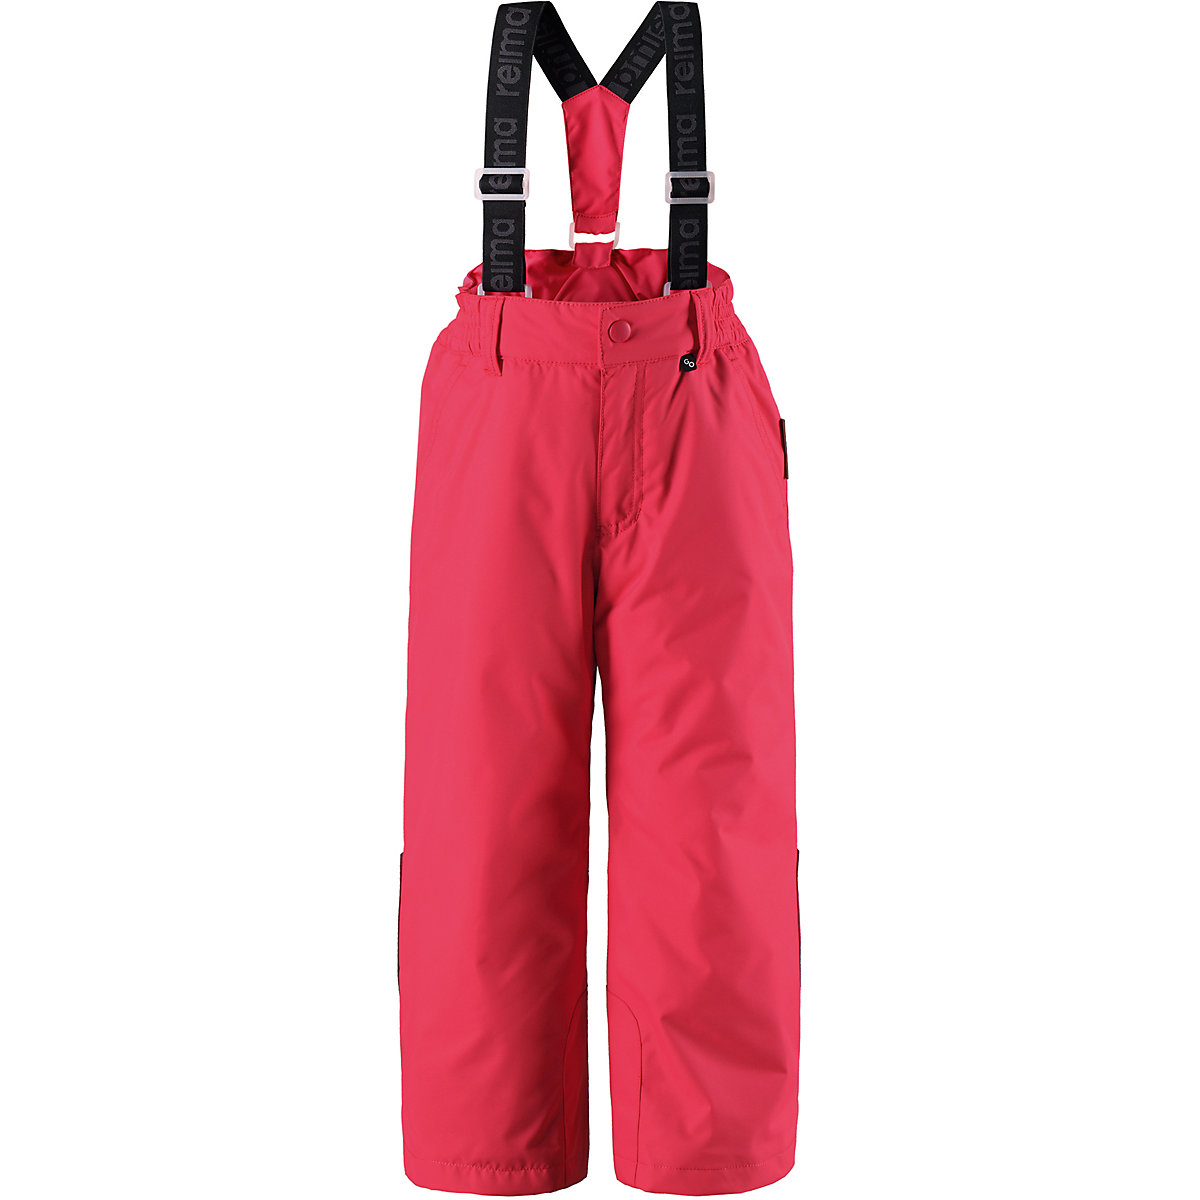 REIMA Pants 8688797 For girls warm Polyester winter girl children clothing outto outdoor sports waterproof polyester pants for men khaki black xl